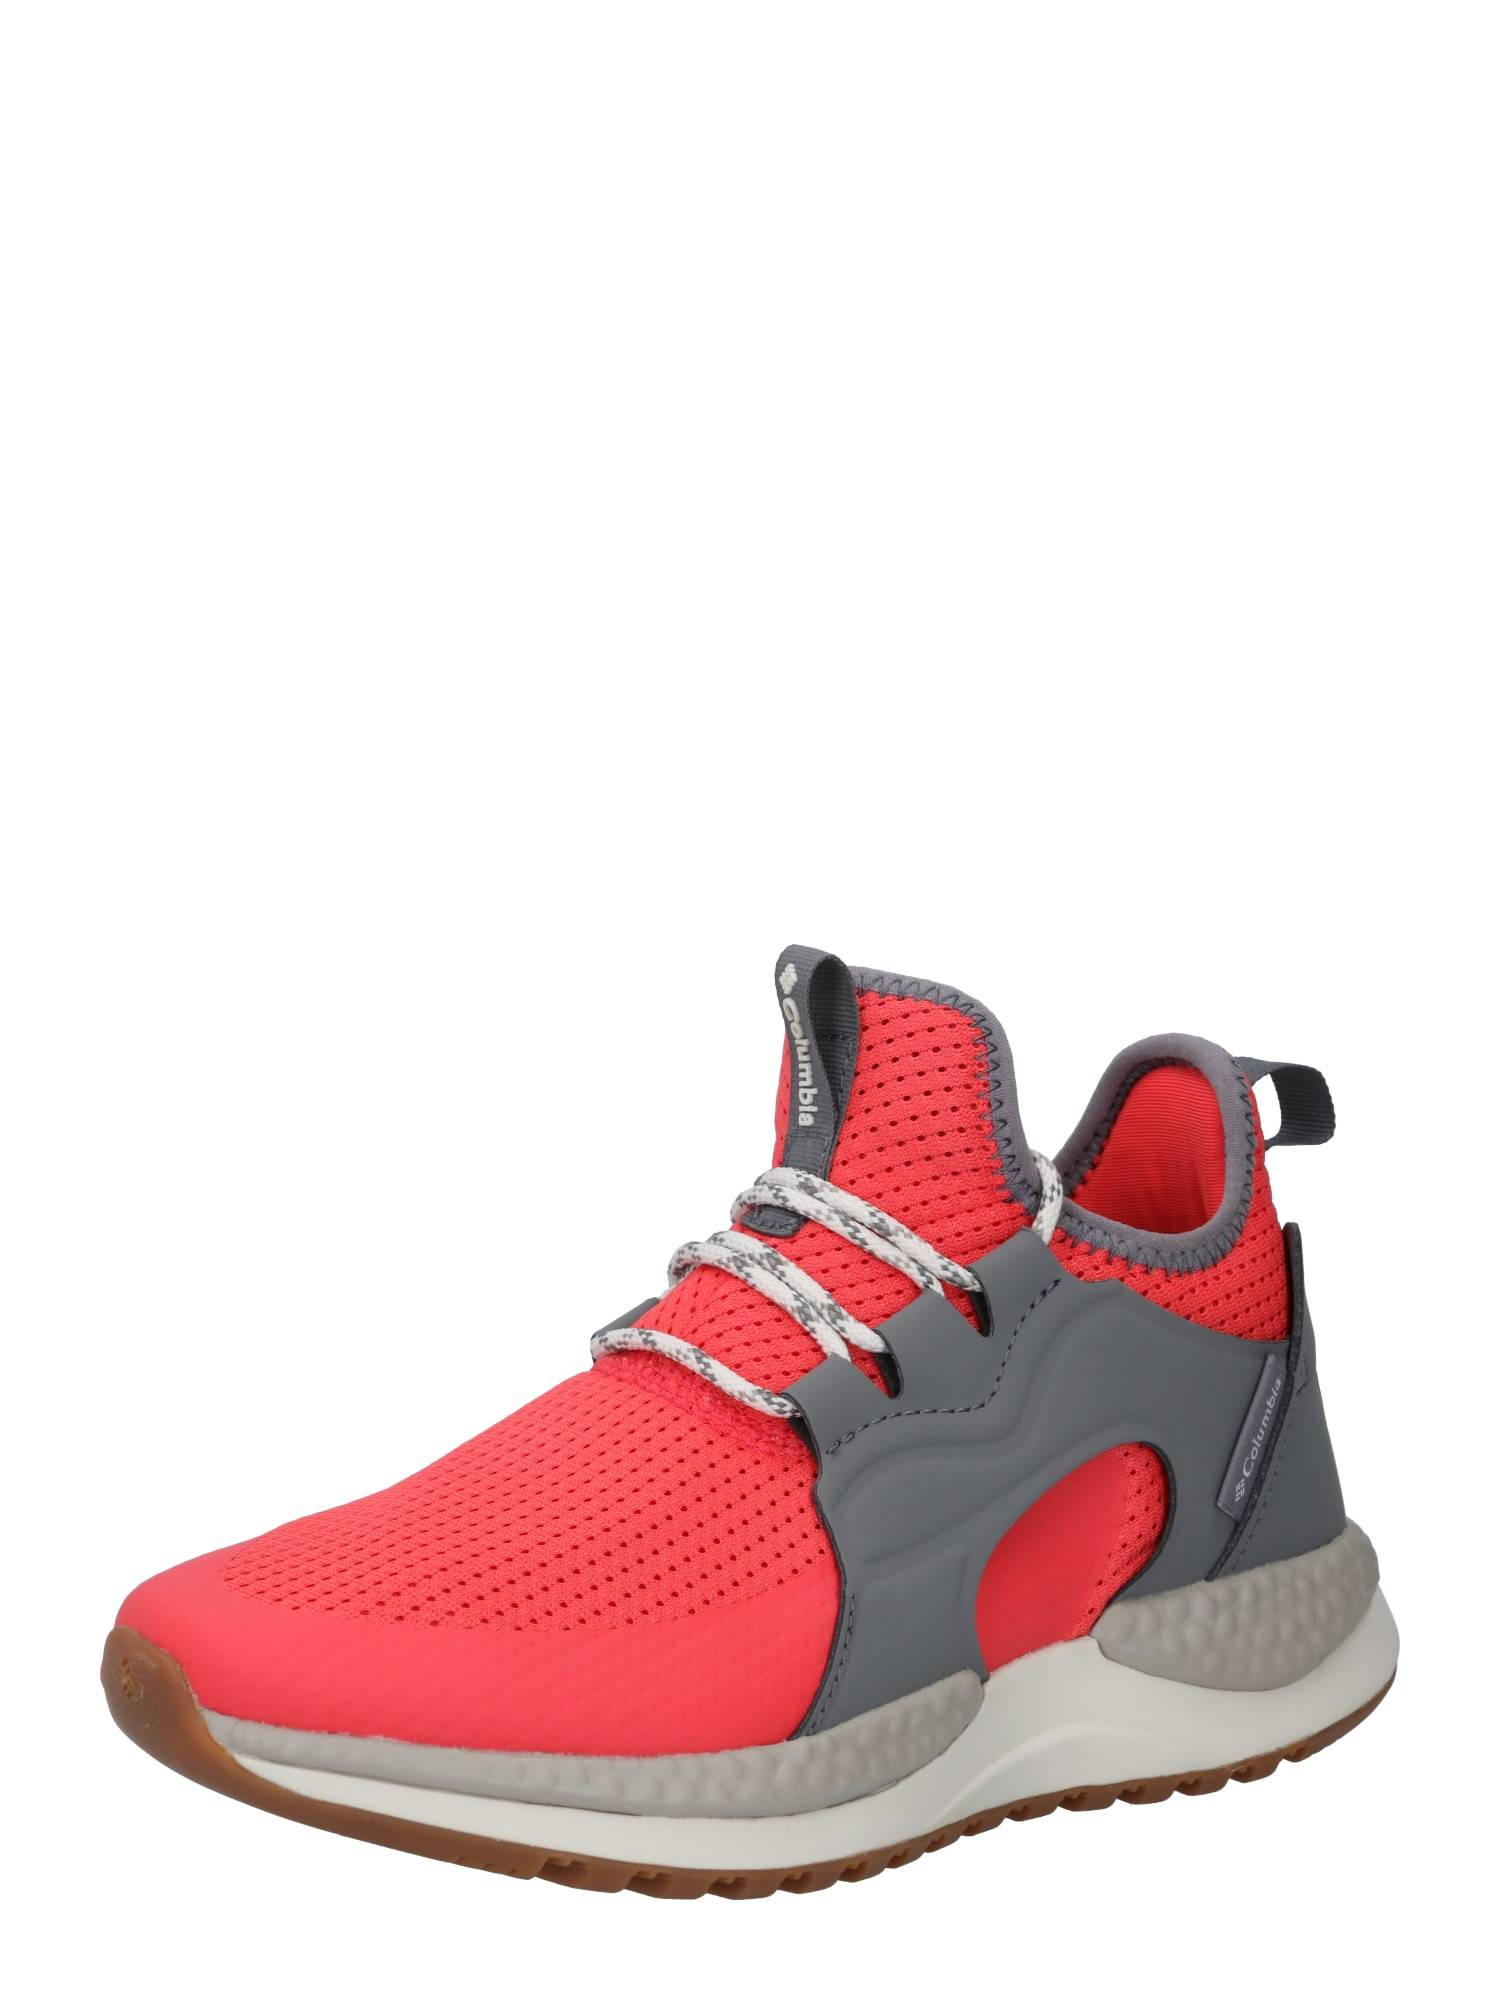 Columbia Baskets basses 'AURORA'  - Rouge - Taille: 6 - female